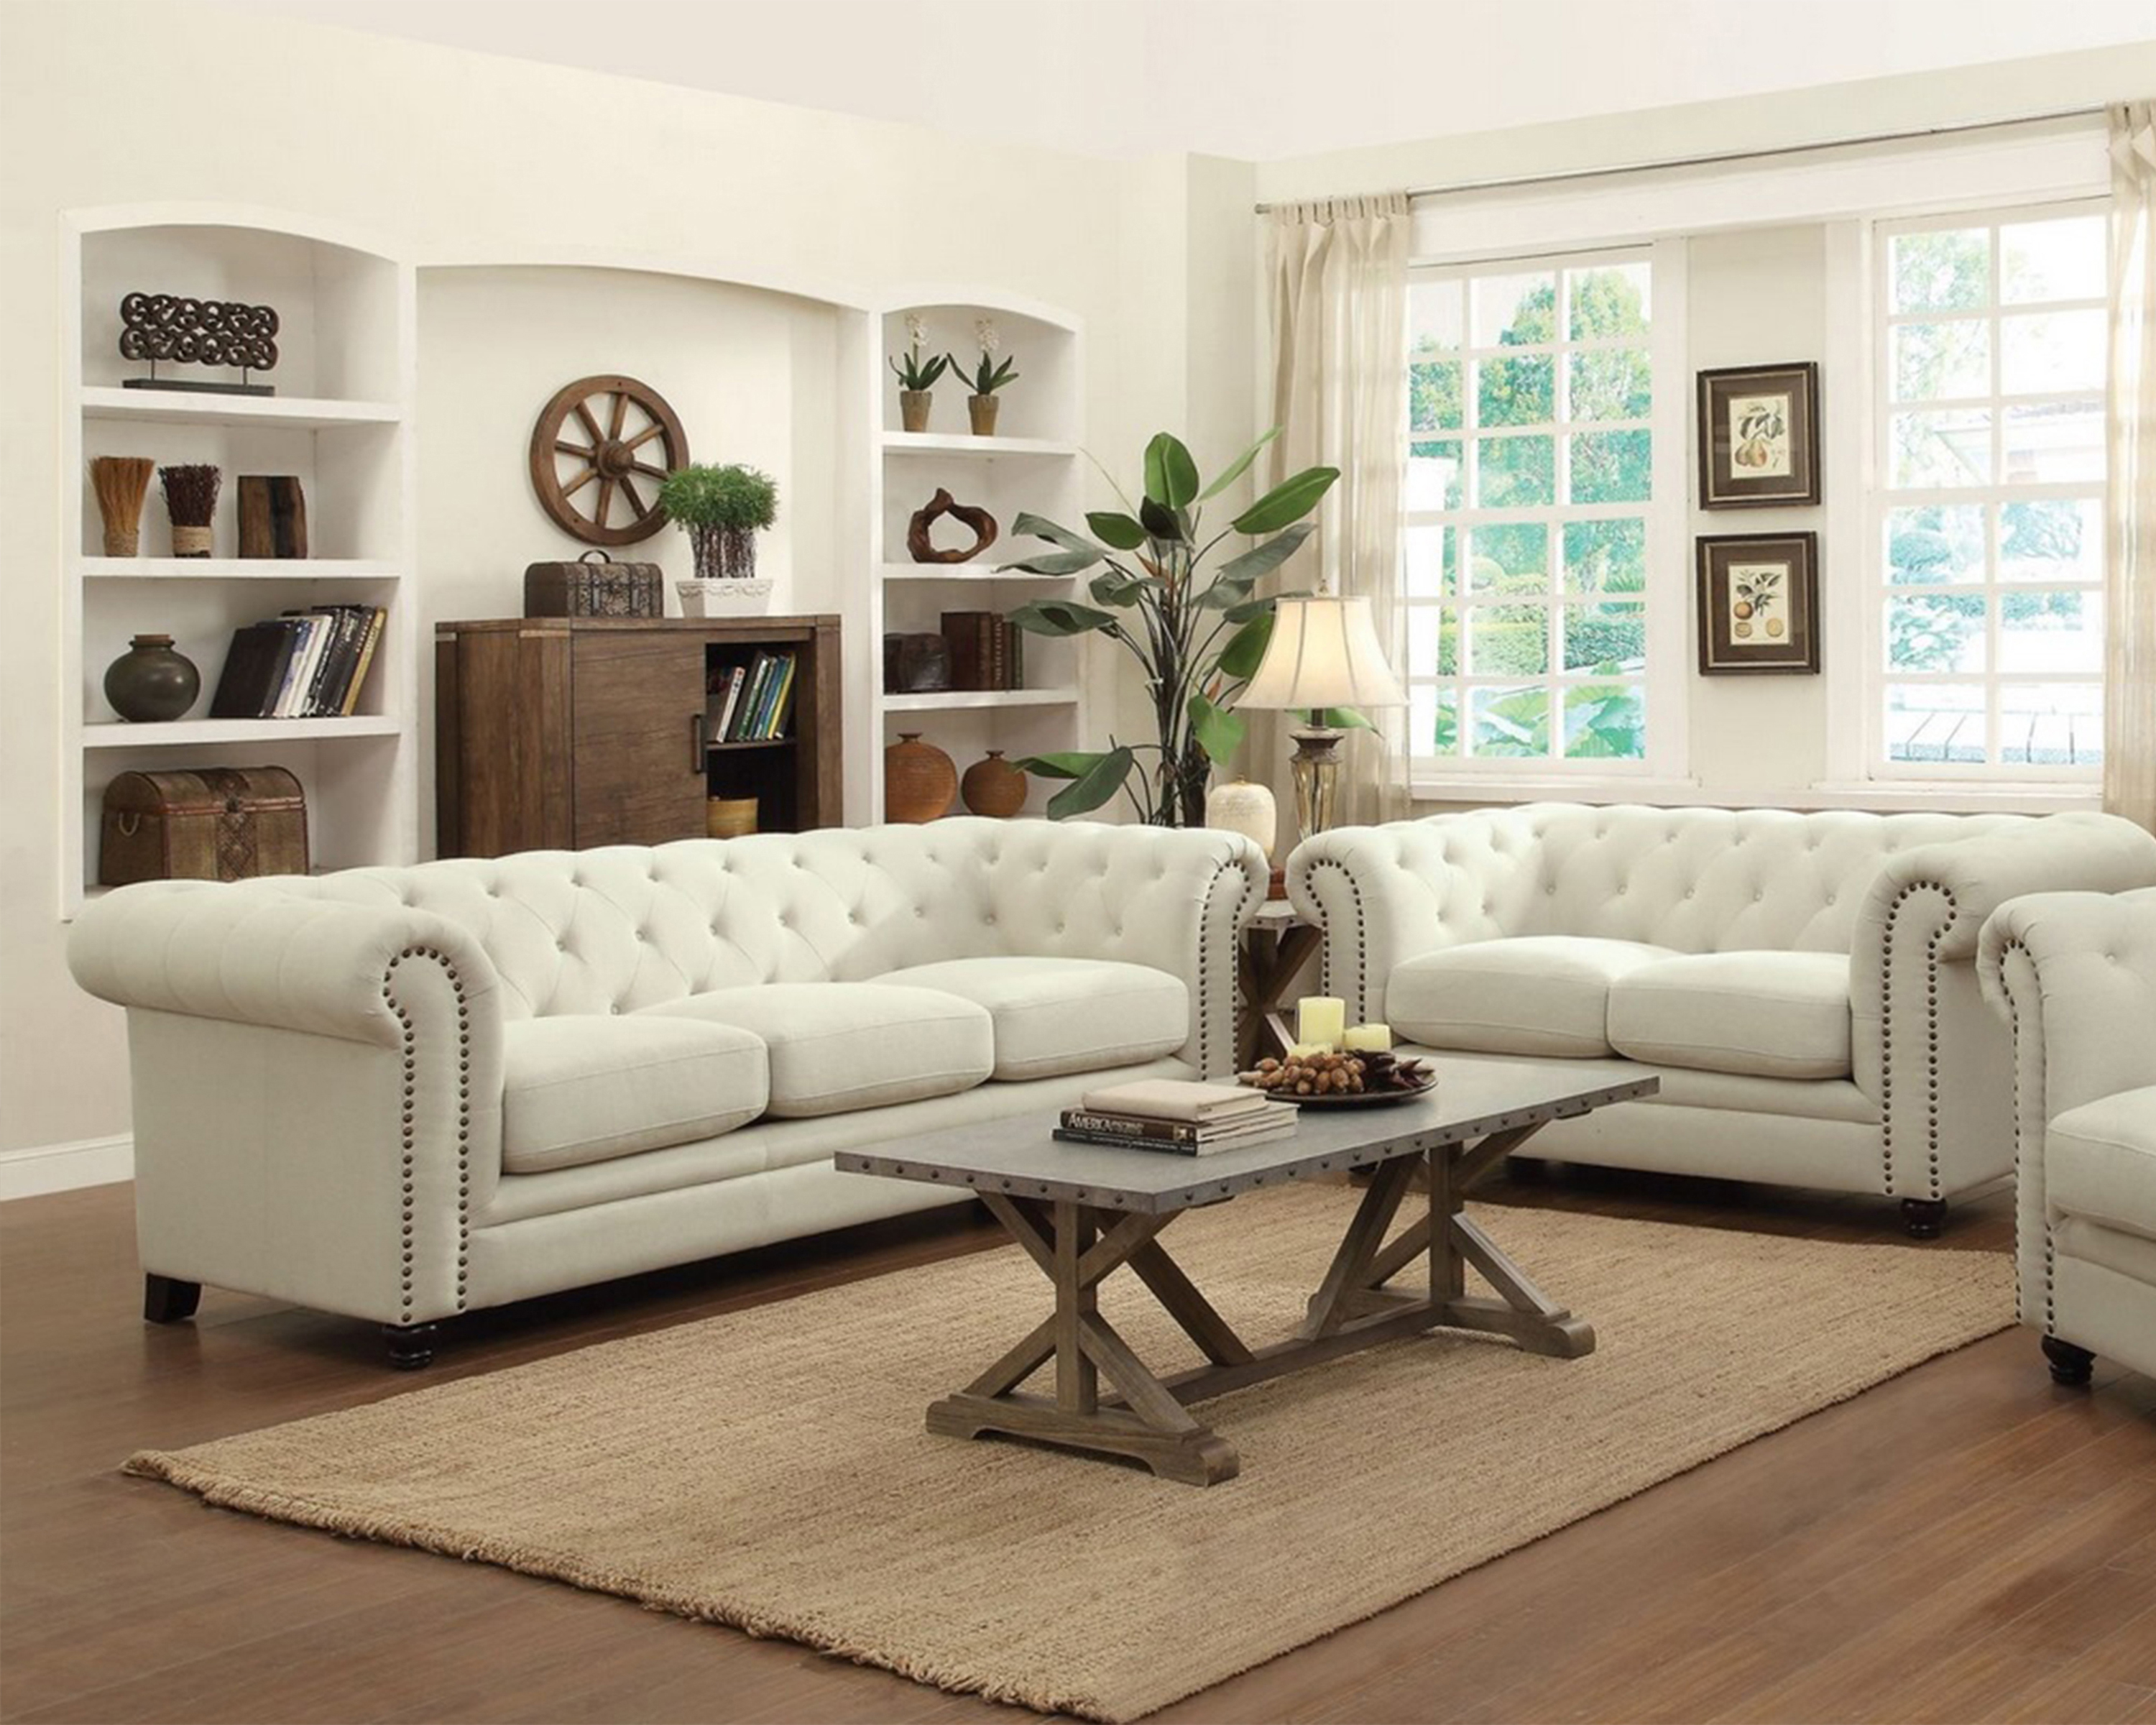 Elegant Front Room Furnishings For Living Room Ideas With Front Room  Furnishings Outlet